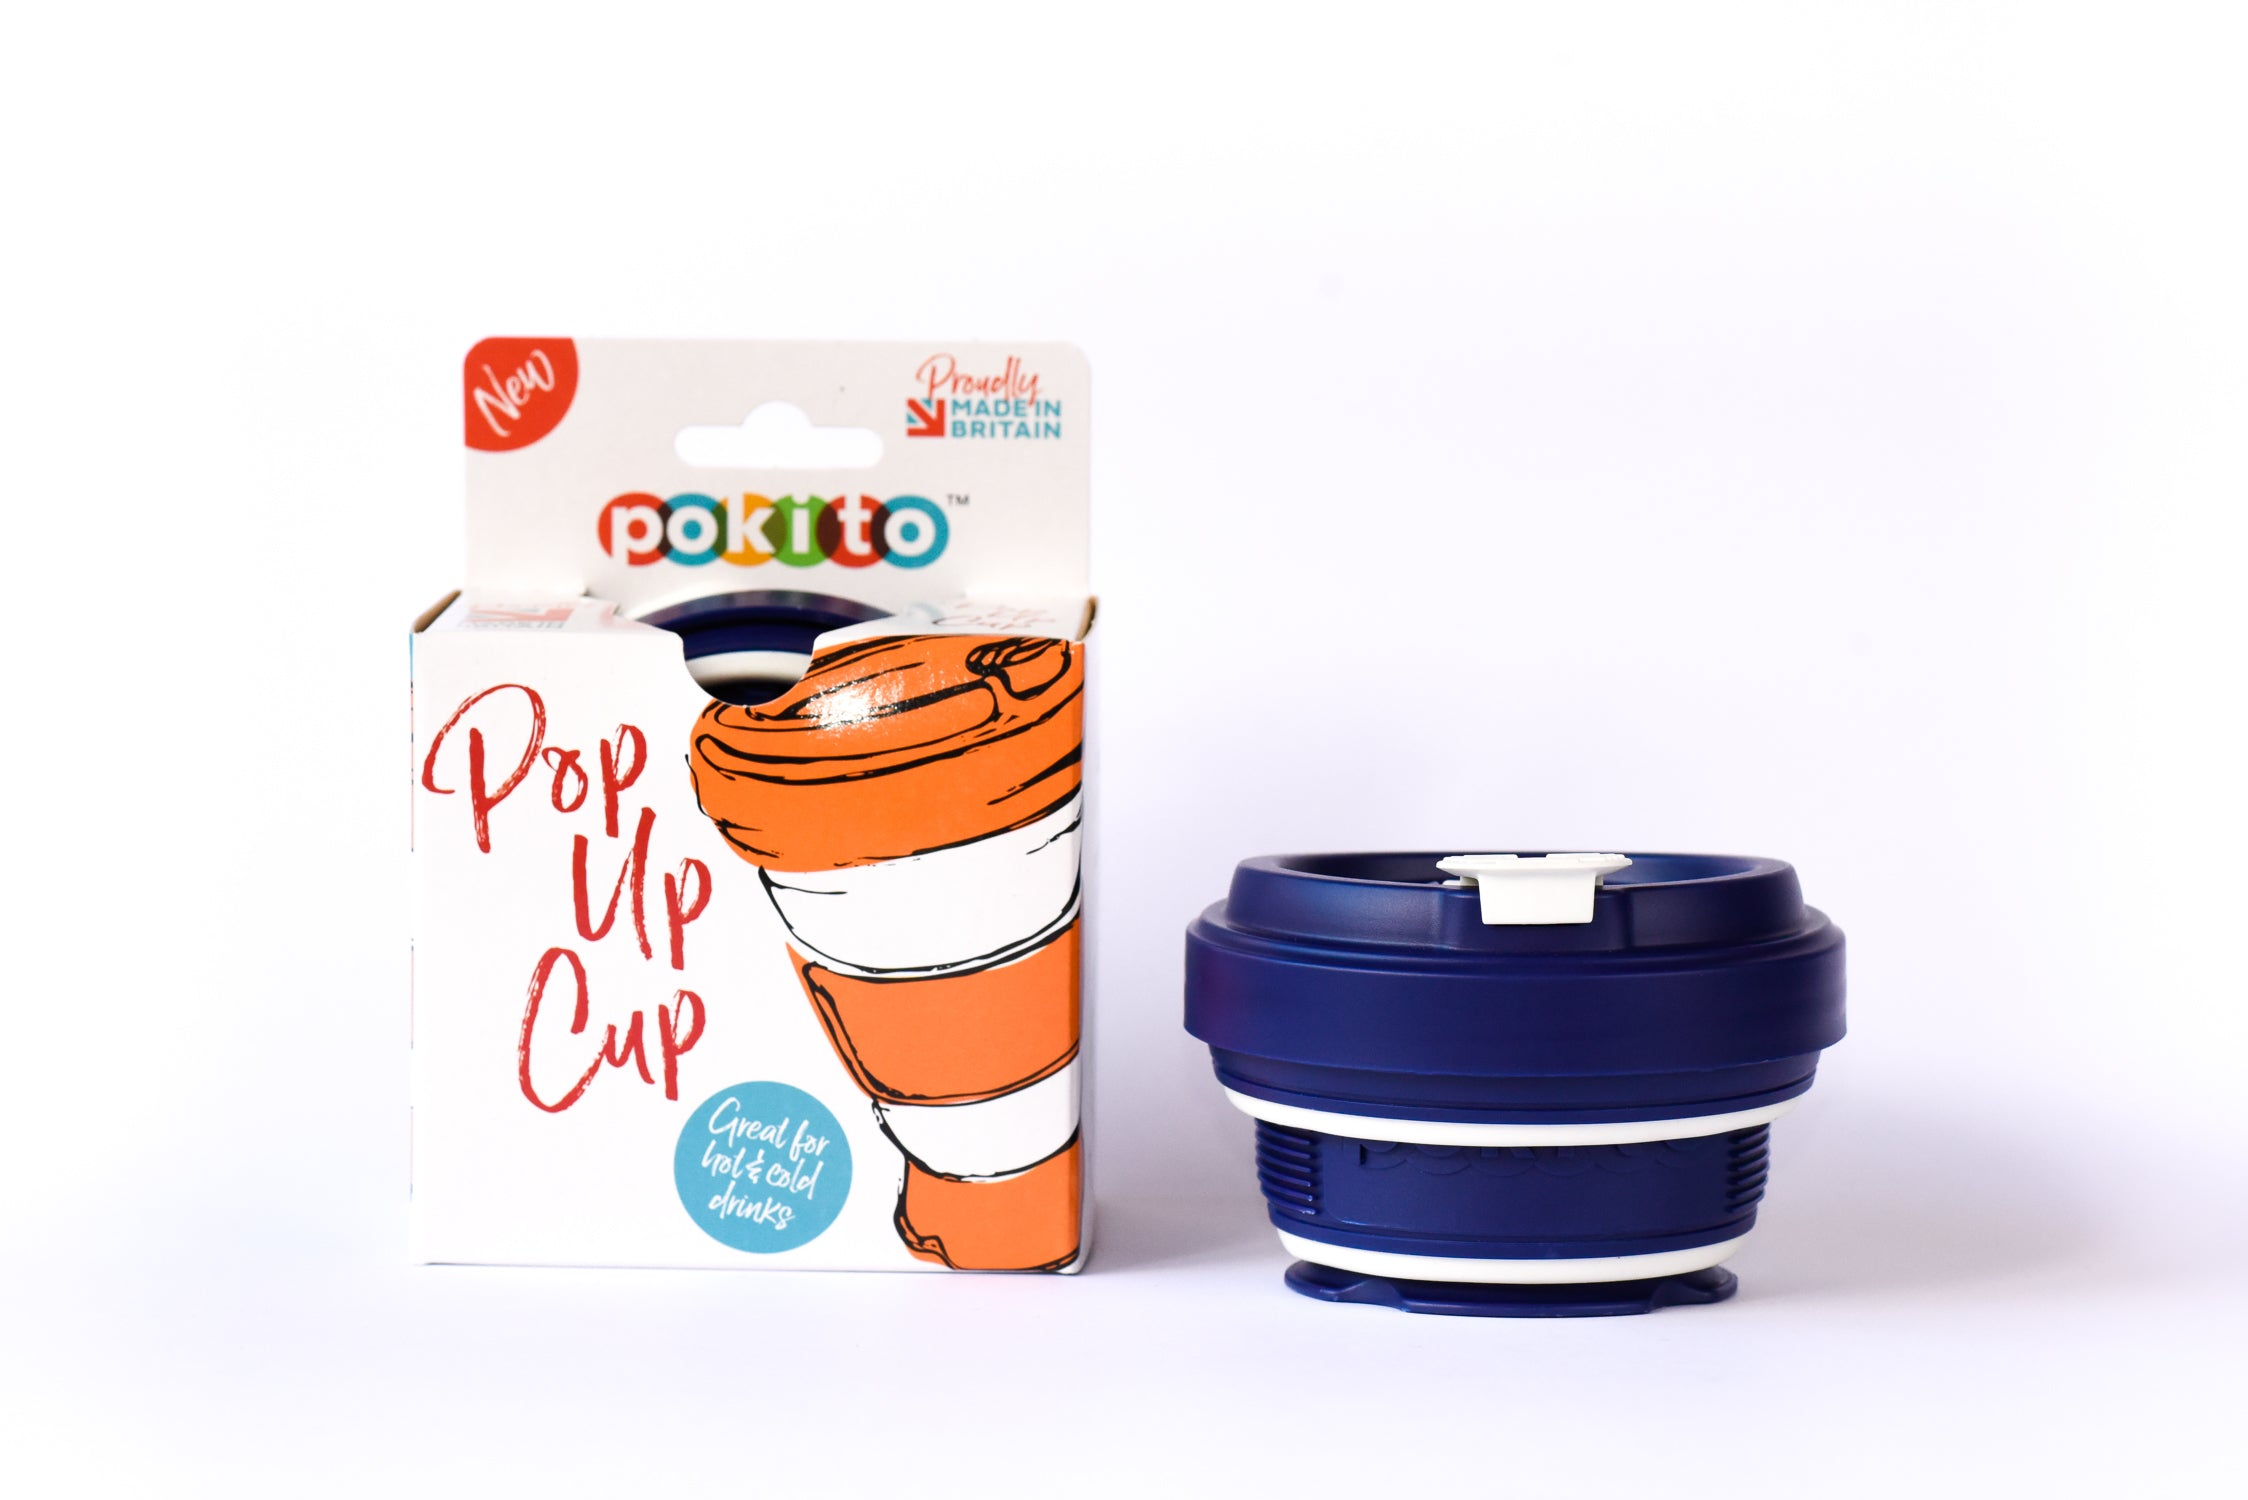 Blue Pokito Cup. Collapsible Cup. Folded Flat.